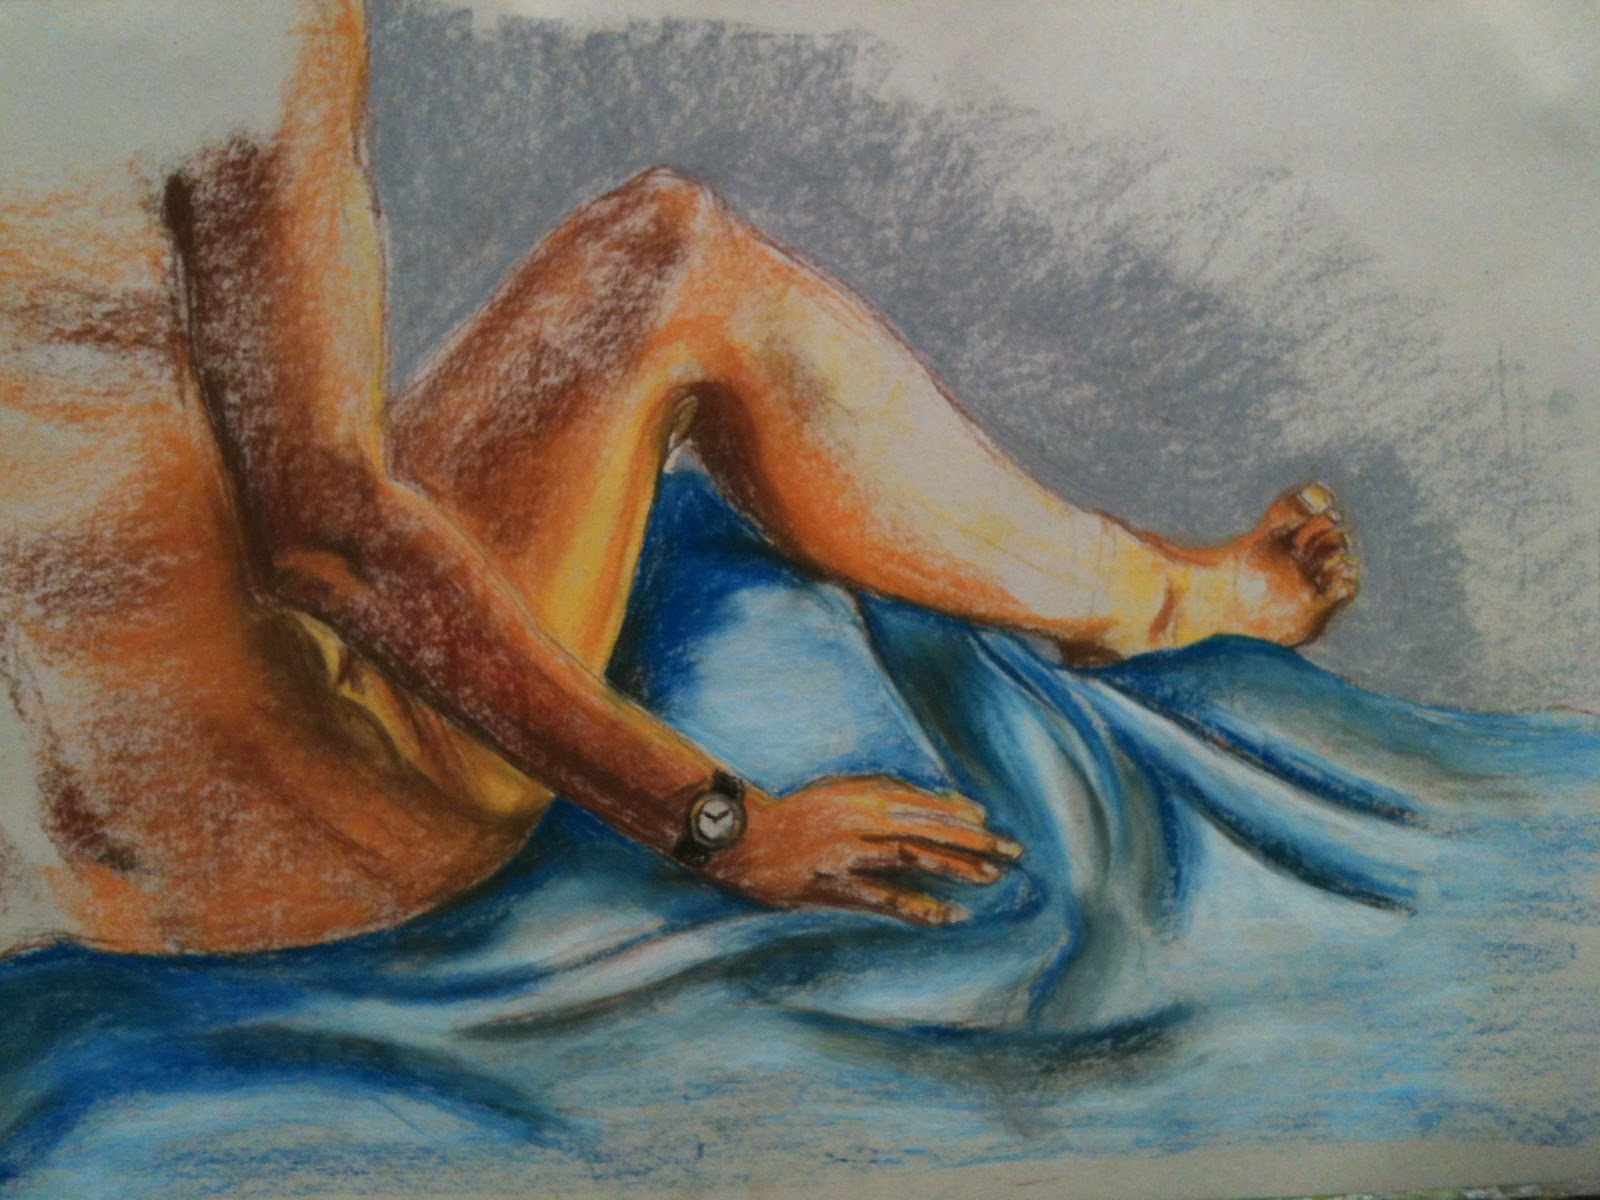 A Little Art From My Hands Drawing With Soft Pastel